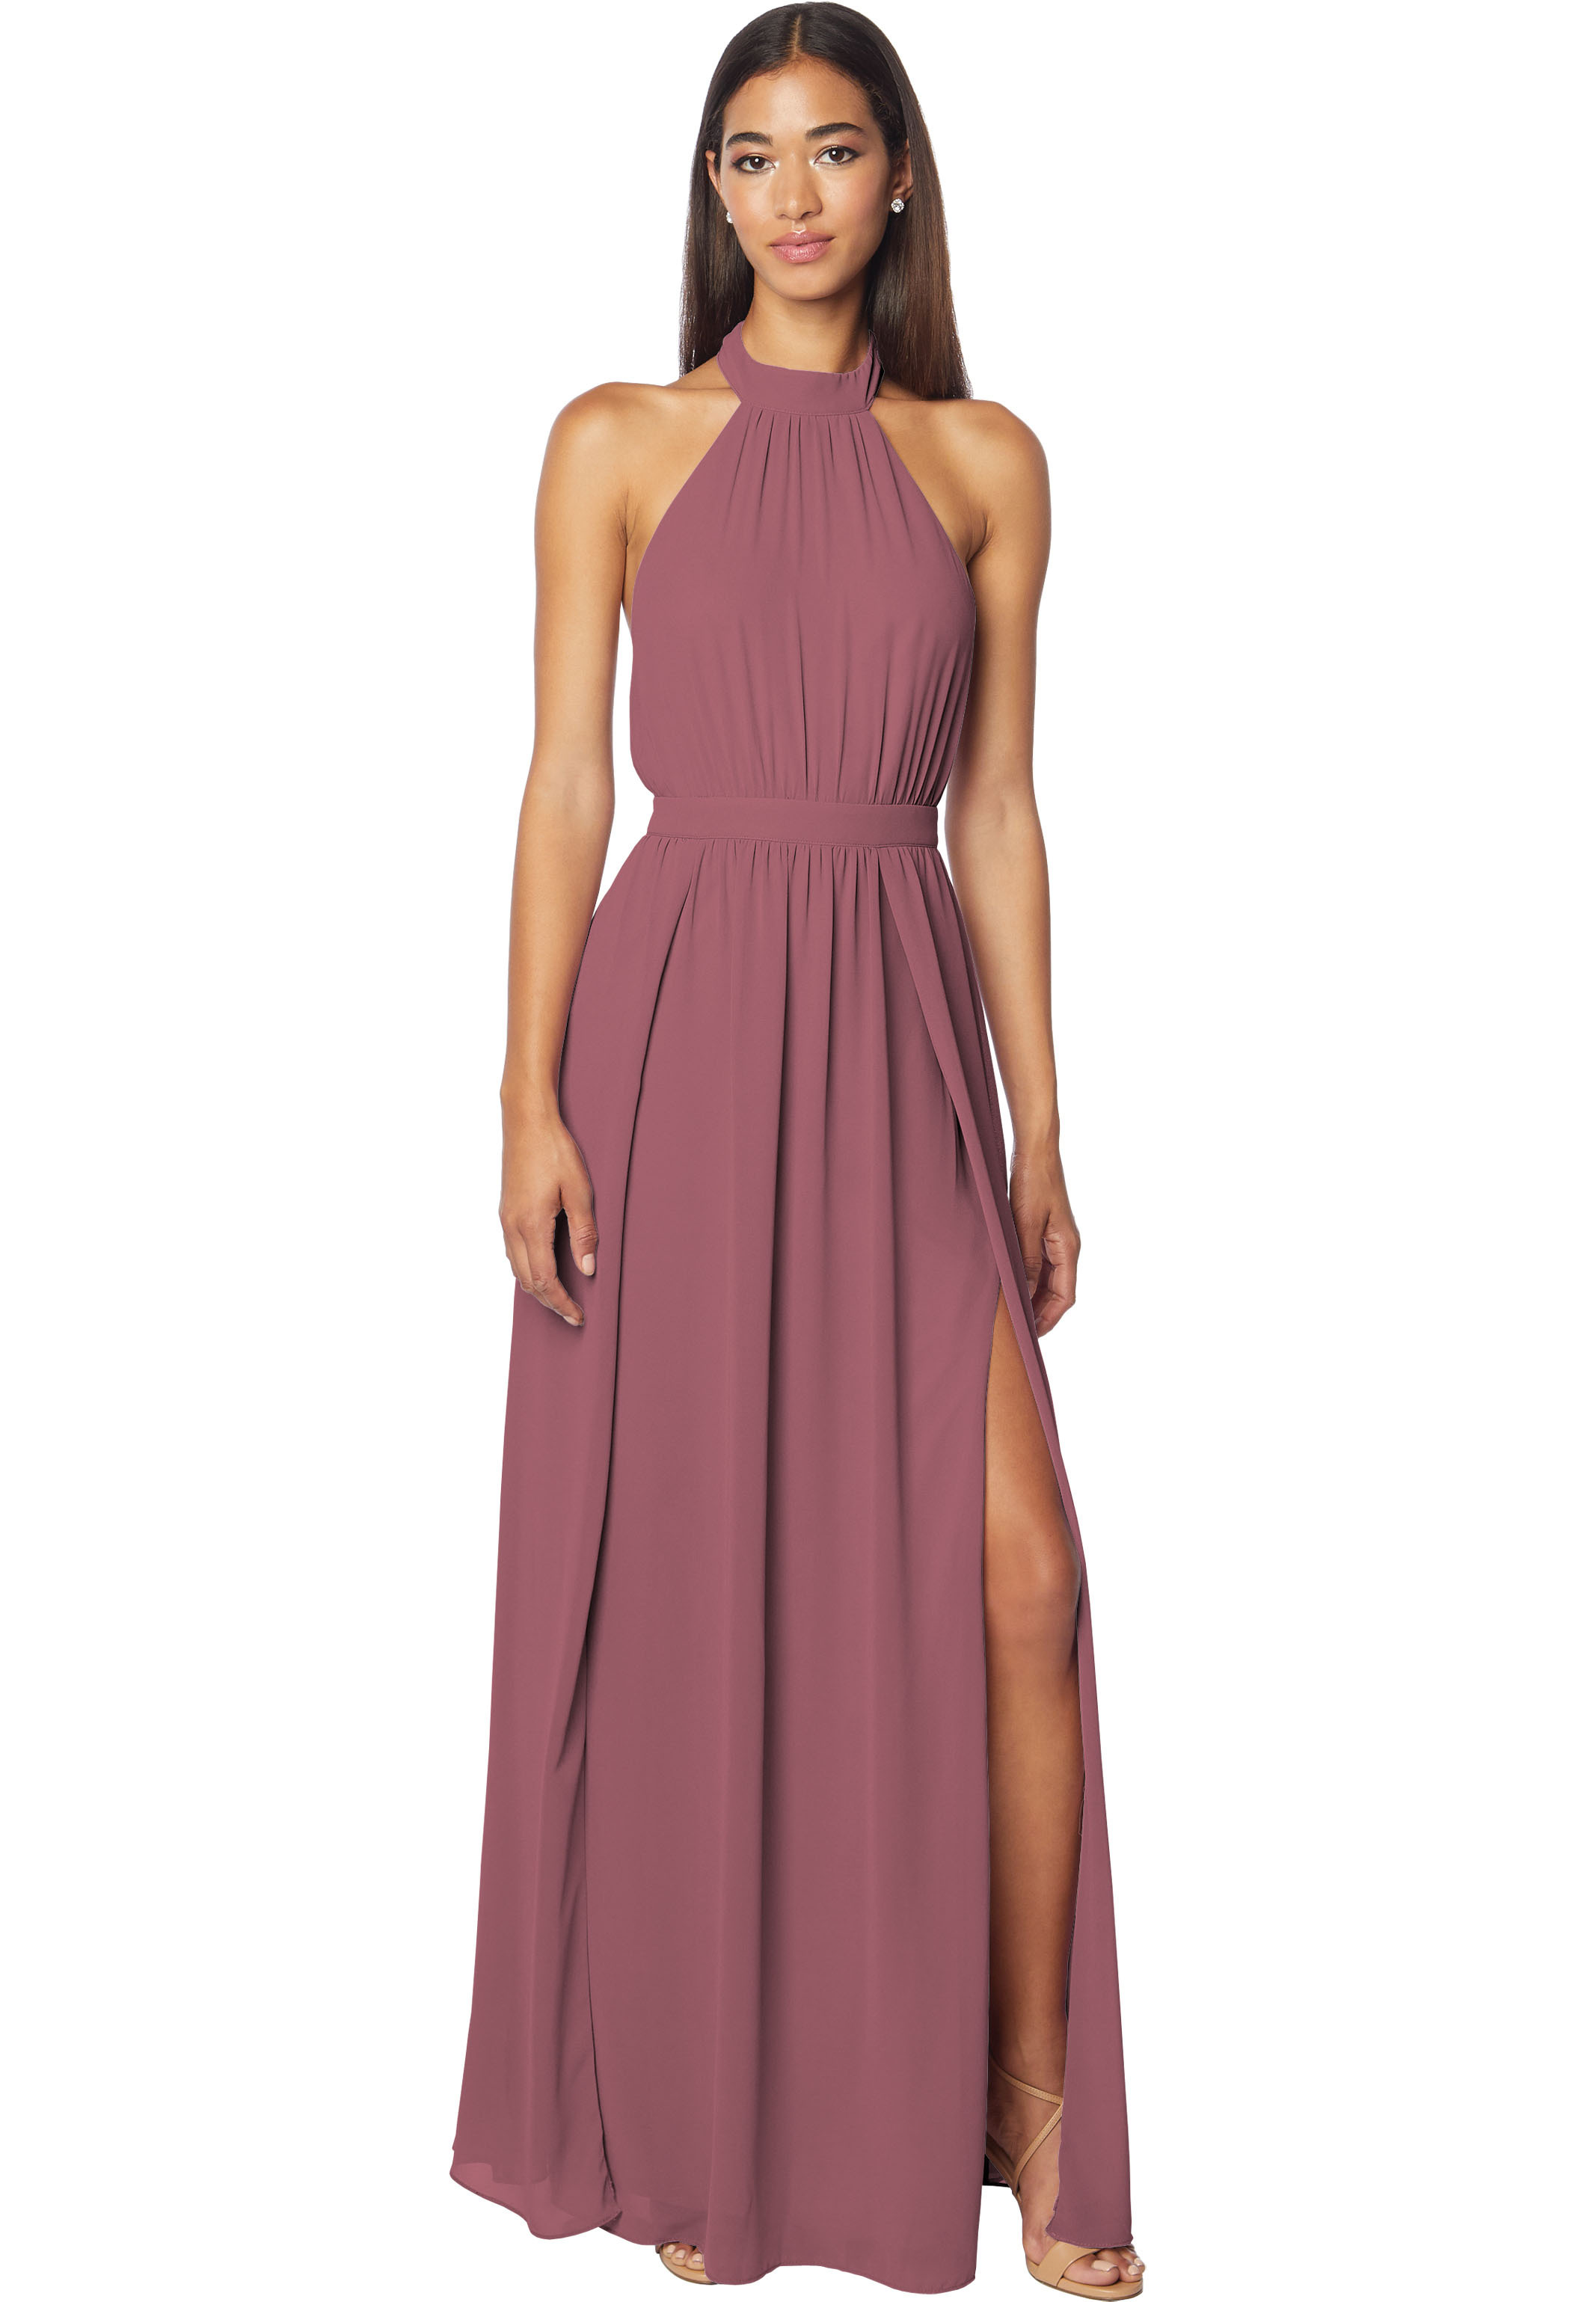 Bill Levkoff ROSEWOOD Chiffon Halter A-line gown, $178.00 Front